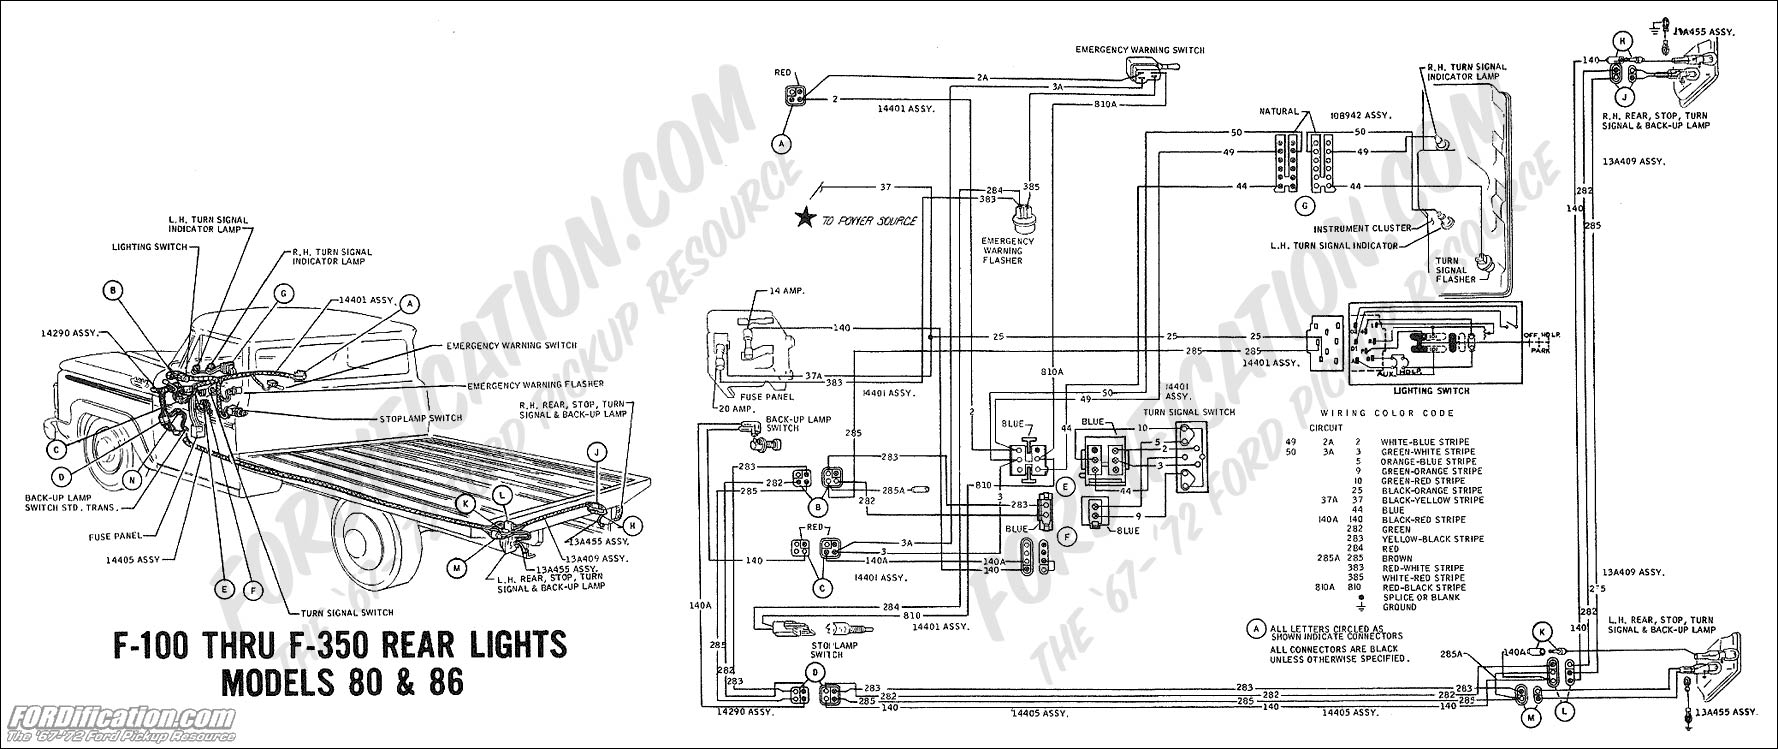 Pontiac Door Lock Wiring Diagram Custom Project 2004 Saturn Vue Power Images Gallery Ford Truck Technical Drawings And Schematics Section H